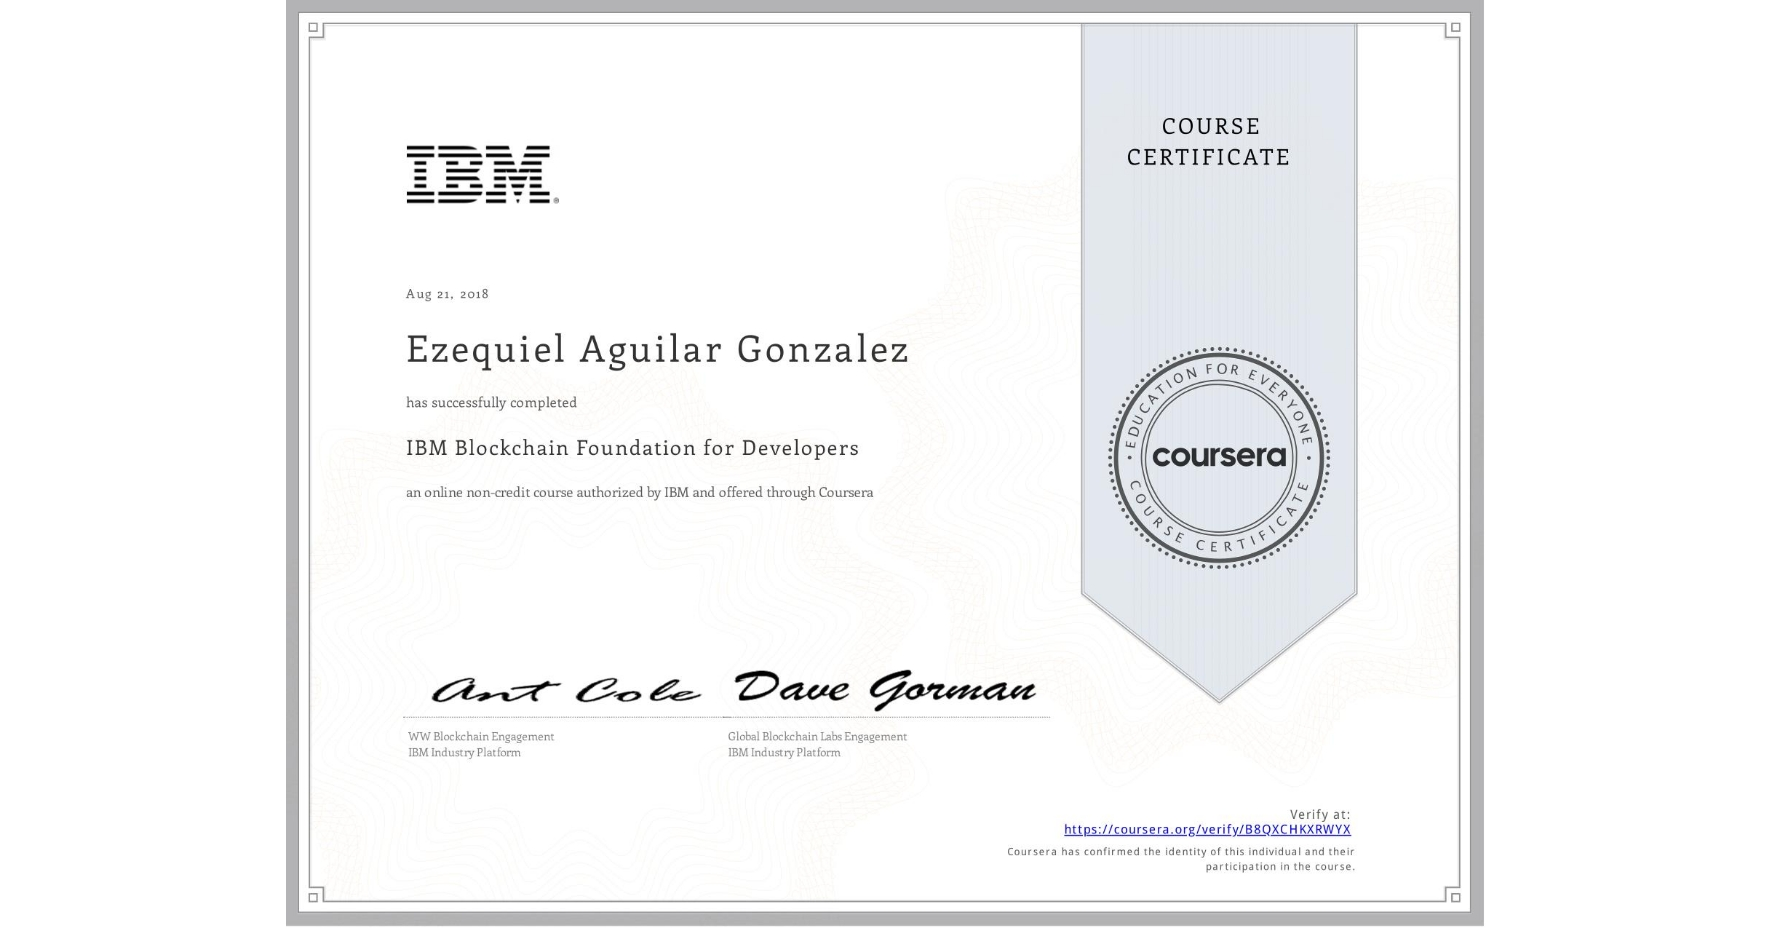 View certificate for Ezequiel Aguilar Gonzalez, IBM Blockchain Foundation for Developers, an online non-credit course authorized by IBM and offered through Coursera